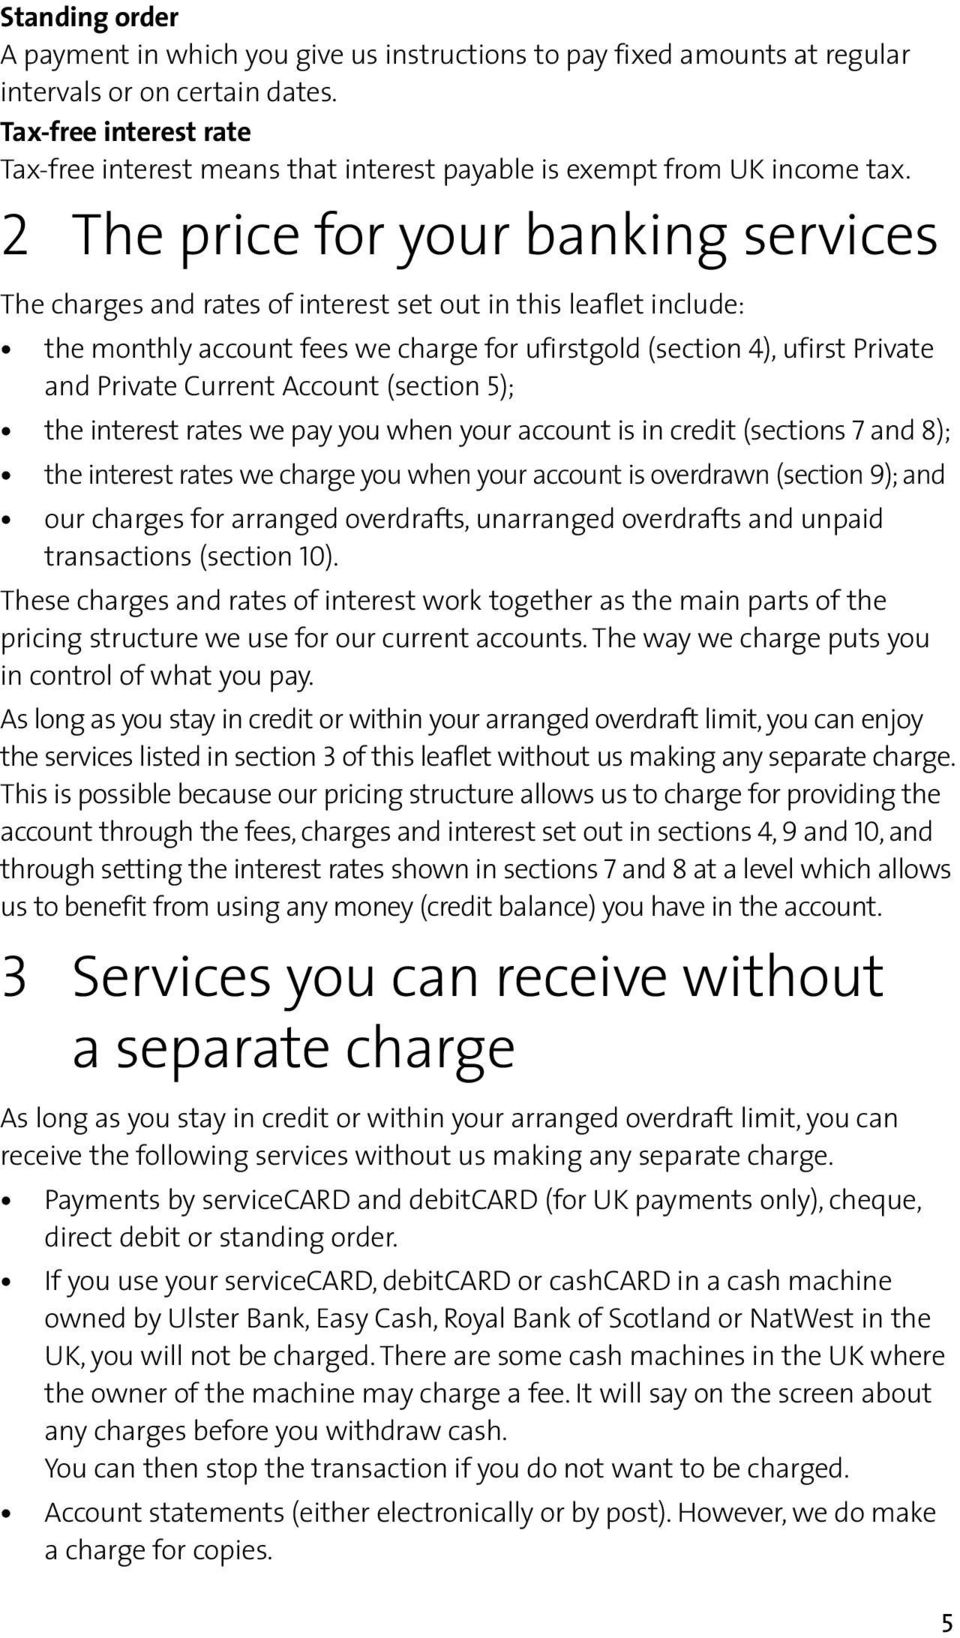 2 The price for your banking services The charges and rates of interest set out in this leaflet include: the monthly account fees we charge for ufirstgold (section 4), ufirst Private and Private